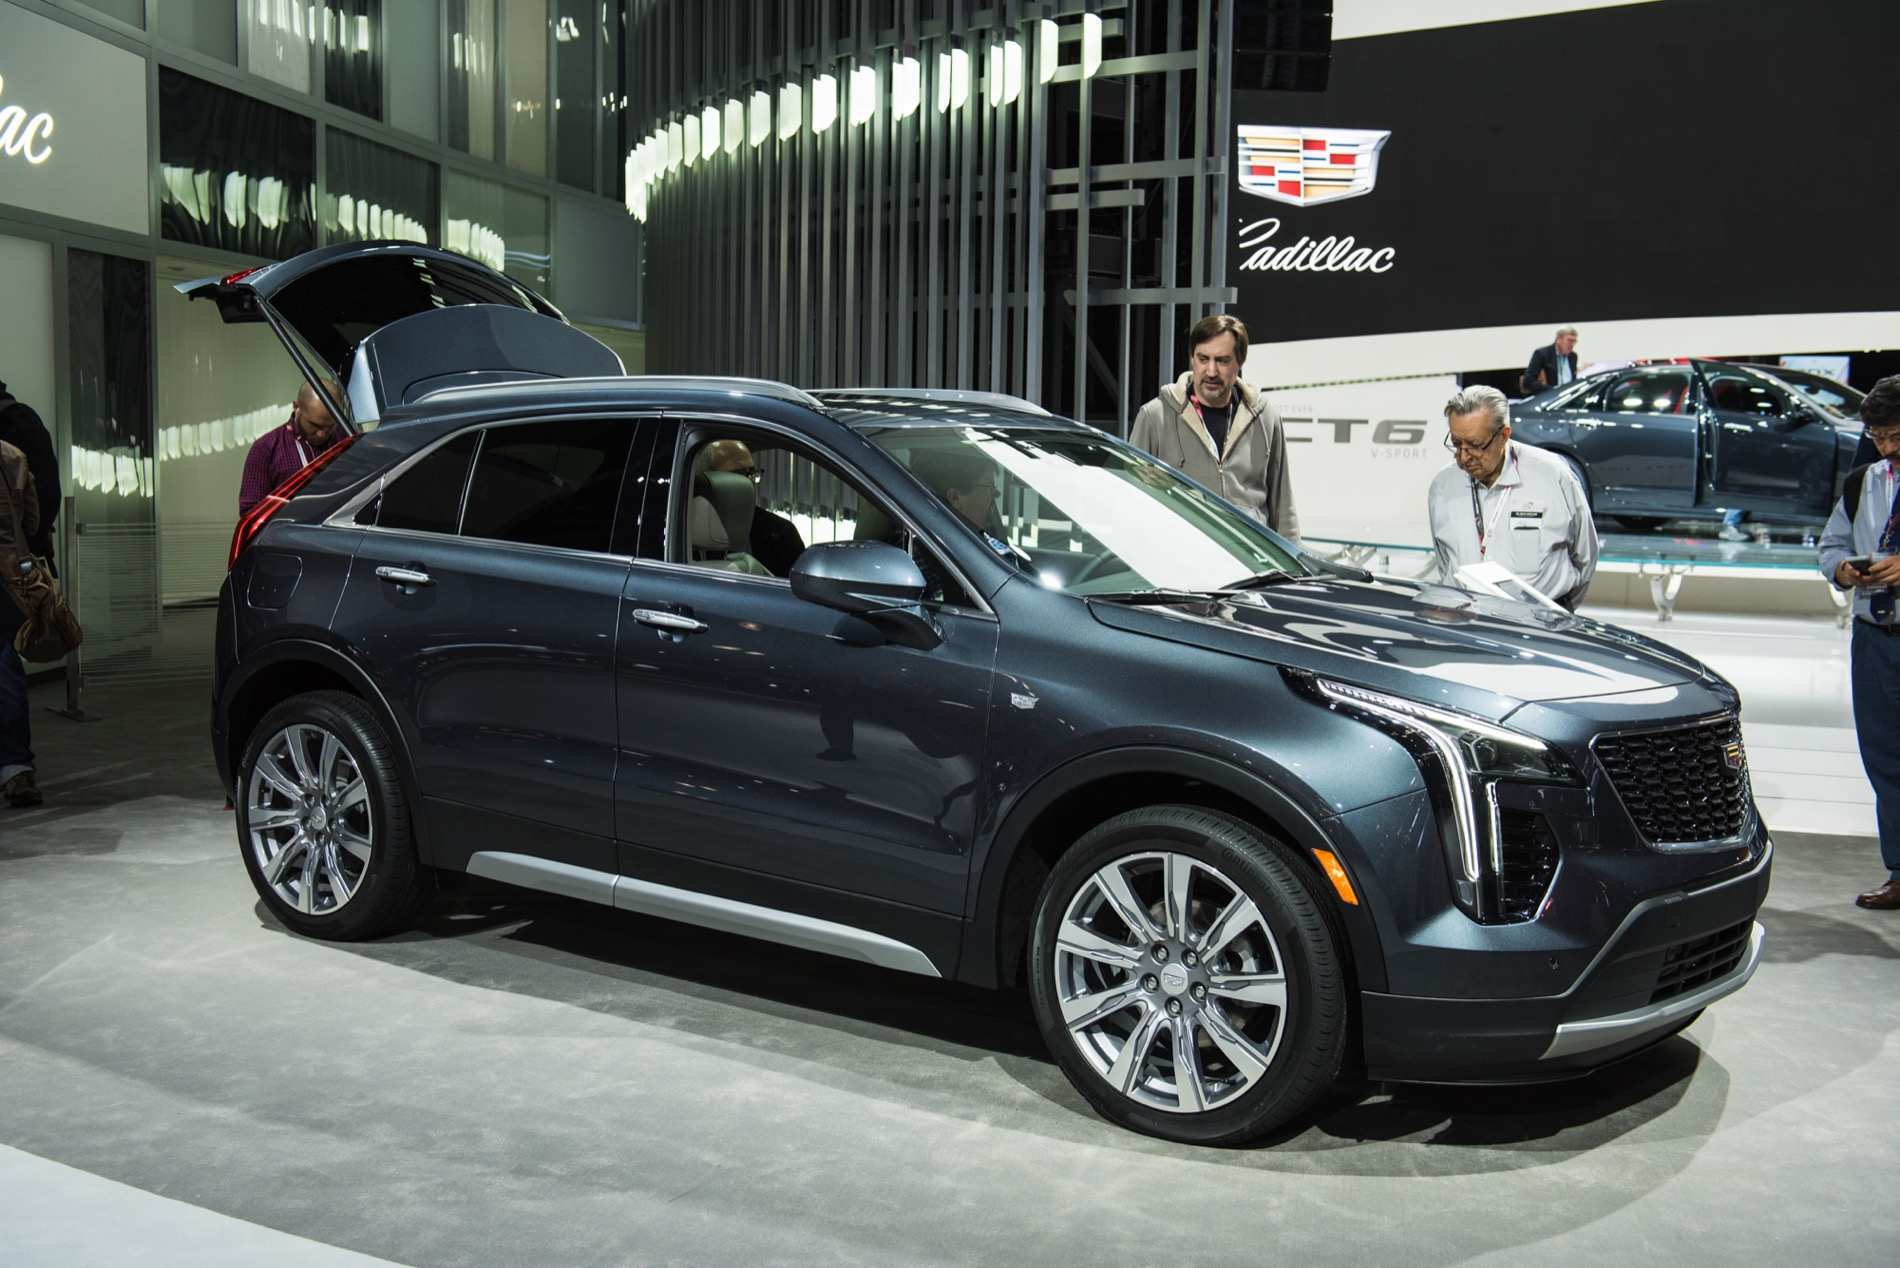 15 A 2020 Cadillac Xt4 Release Date Concept